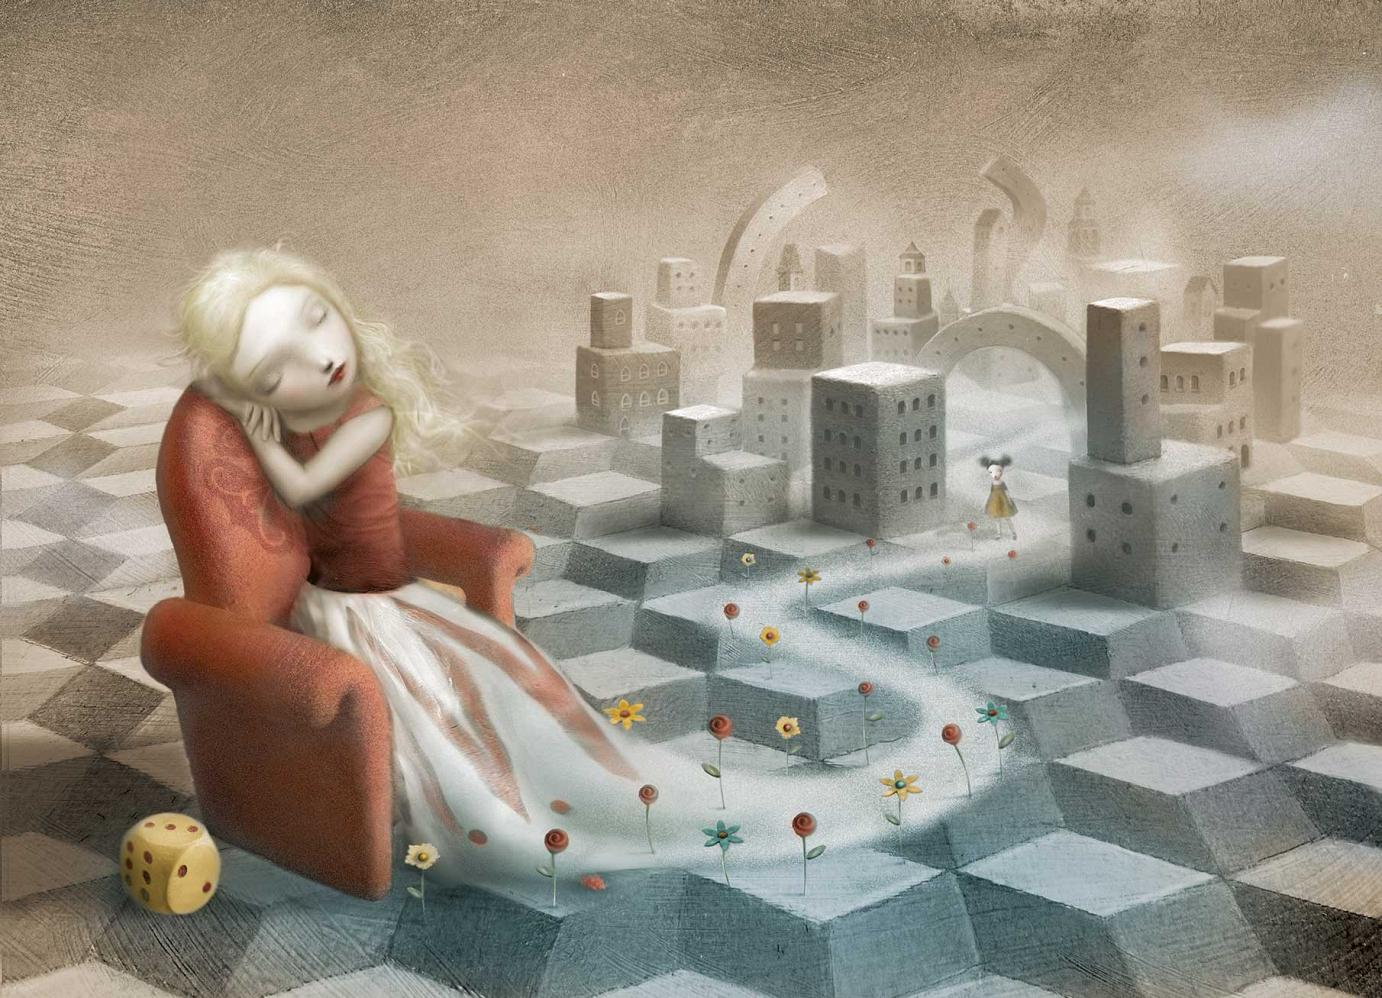 »Girl Dream« · 2006 Mischtechnik und digital 41 cm x 31 cm Illustration aus dem Buch »The Girl in the Castle inside the Museum« von Nicoletta Ceccoli